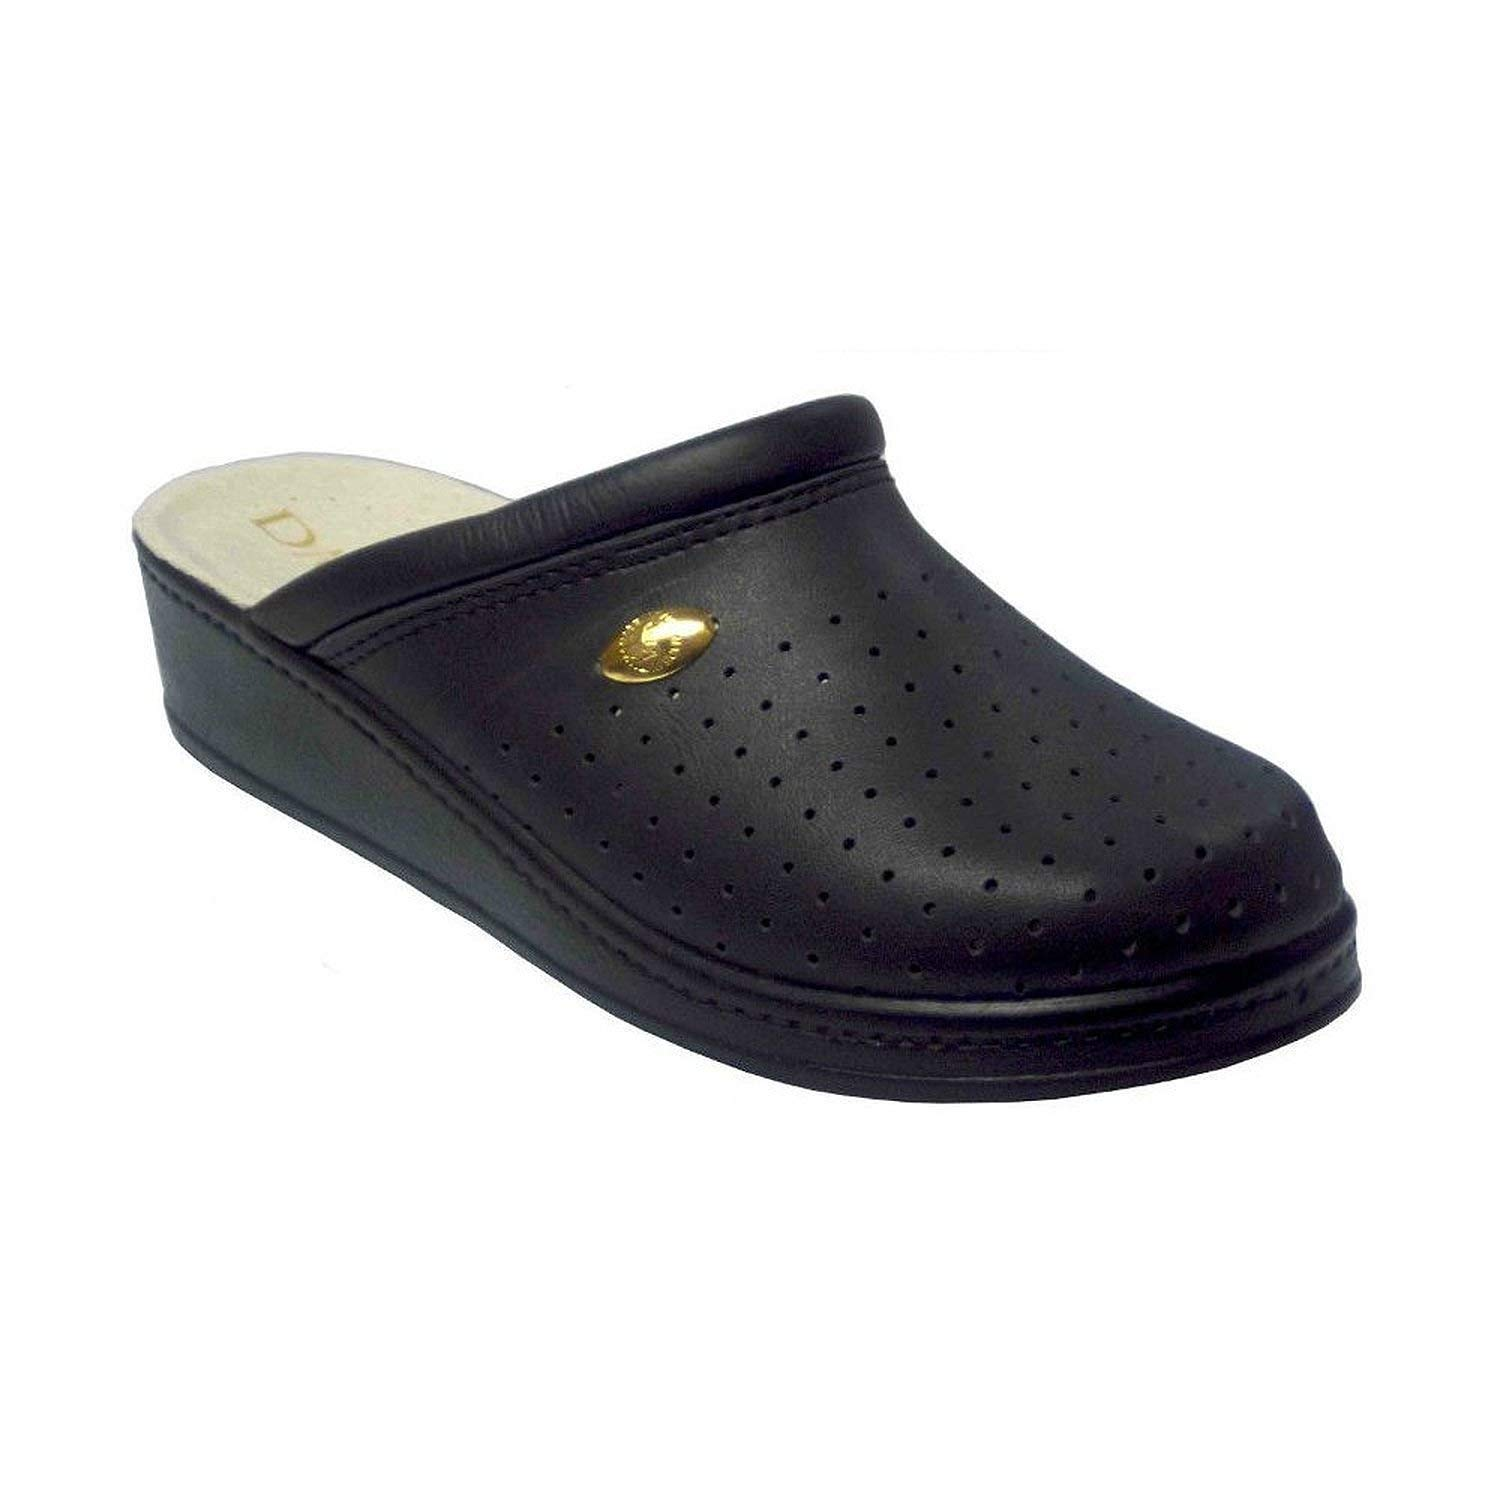 ffd70529c83c5c Get Quotations · Damiani s by Italian Shoemakers Women s 300 Black Leather  Slip On Perforated Clogs Shoes